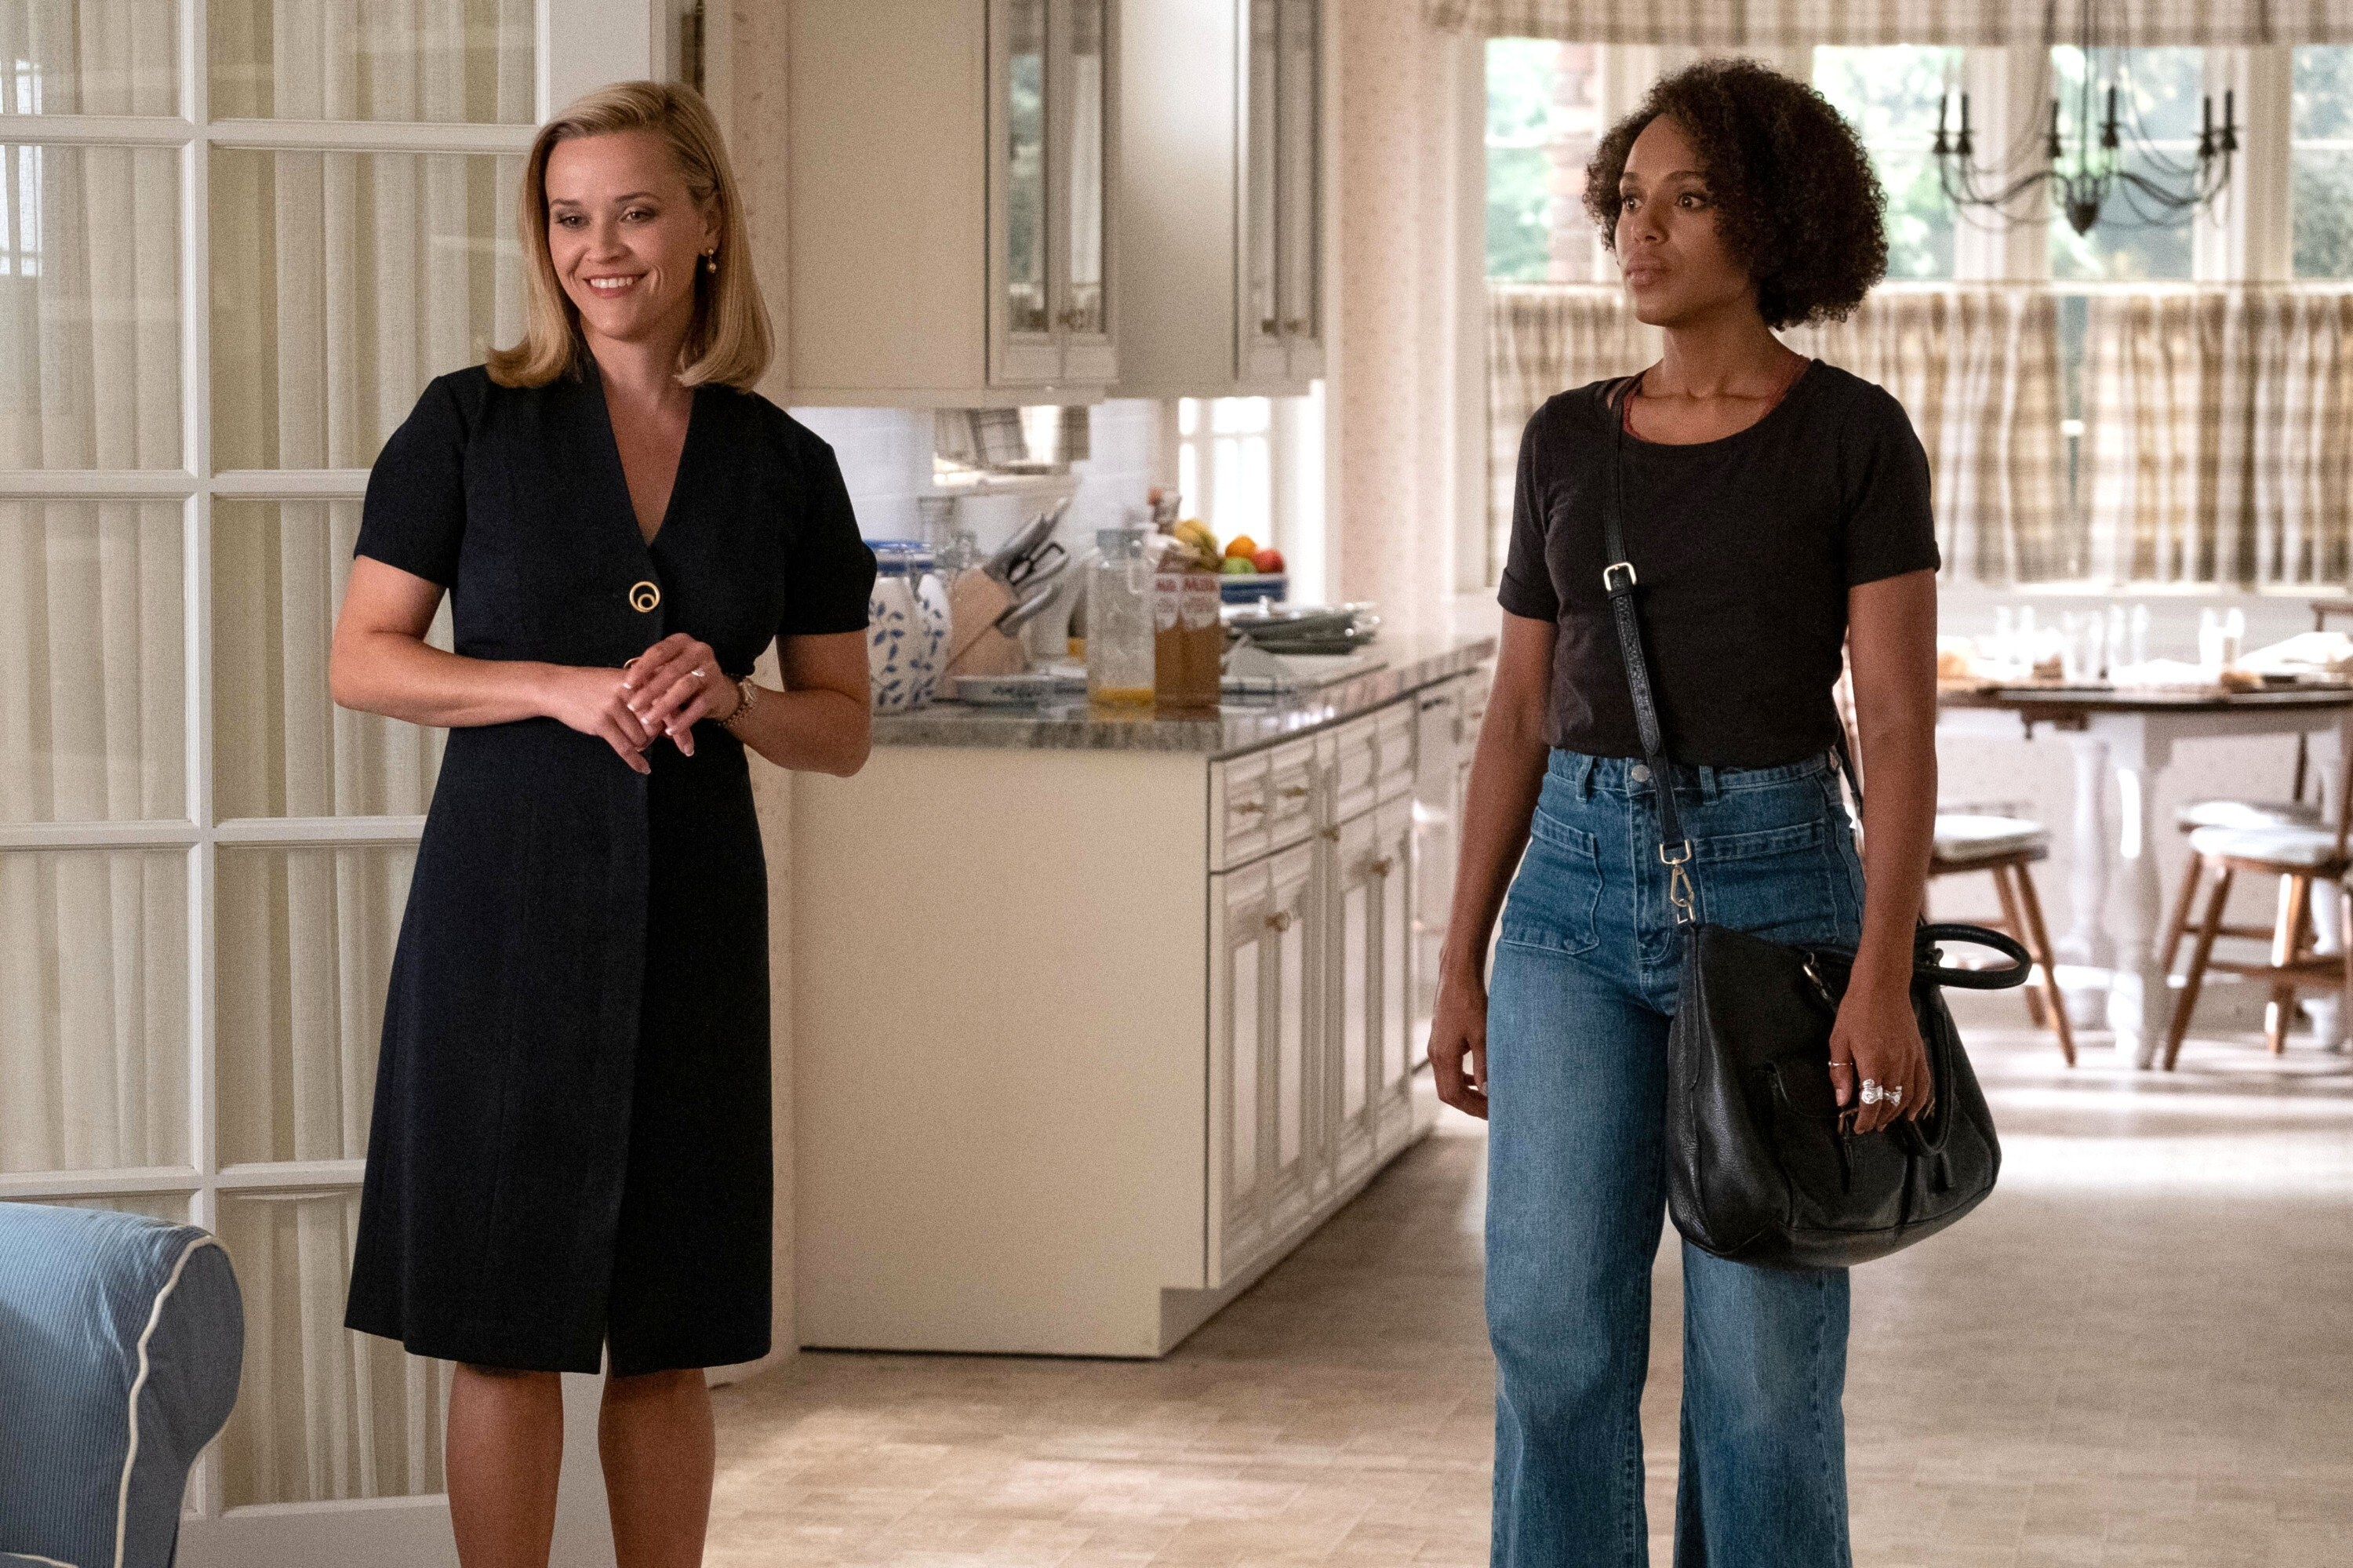 Reese Witherspoon and Kerry Washington stand in a kitchen